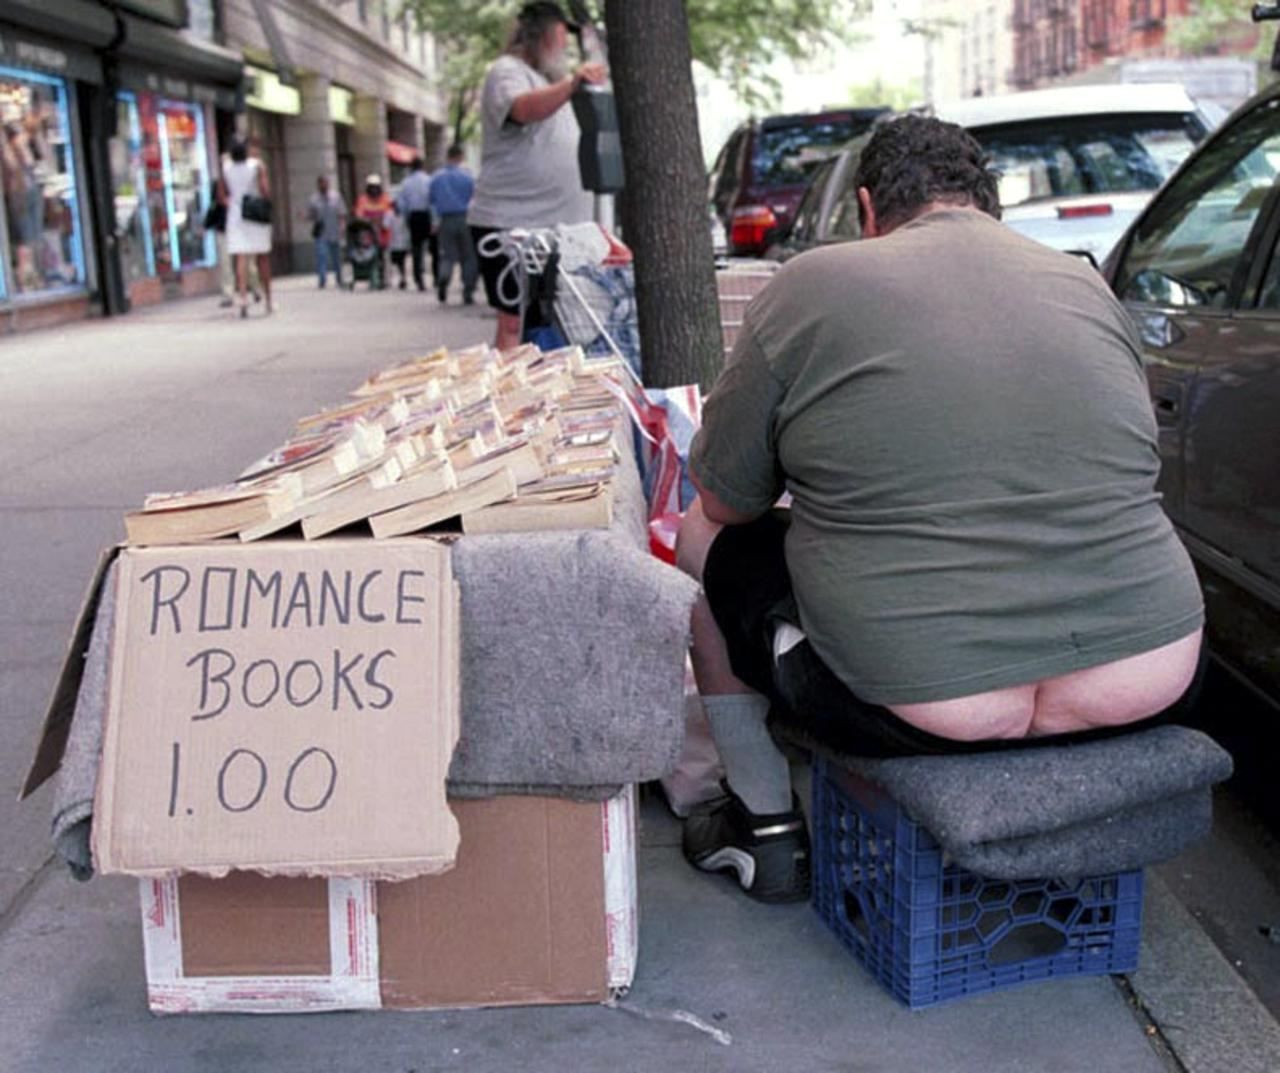 A street book vendor on the Upper West Side gets engrossed in one of his own books for sale.